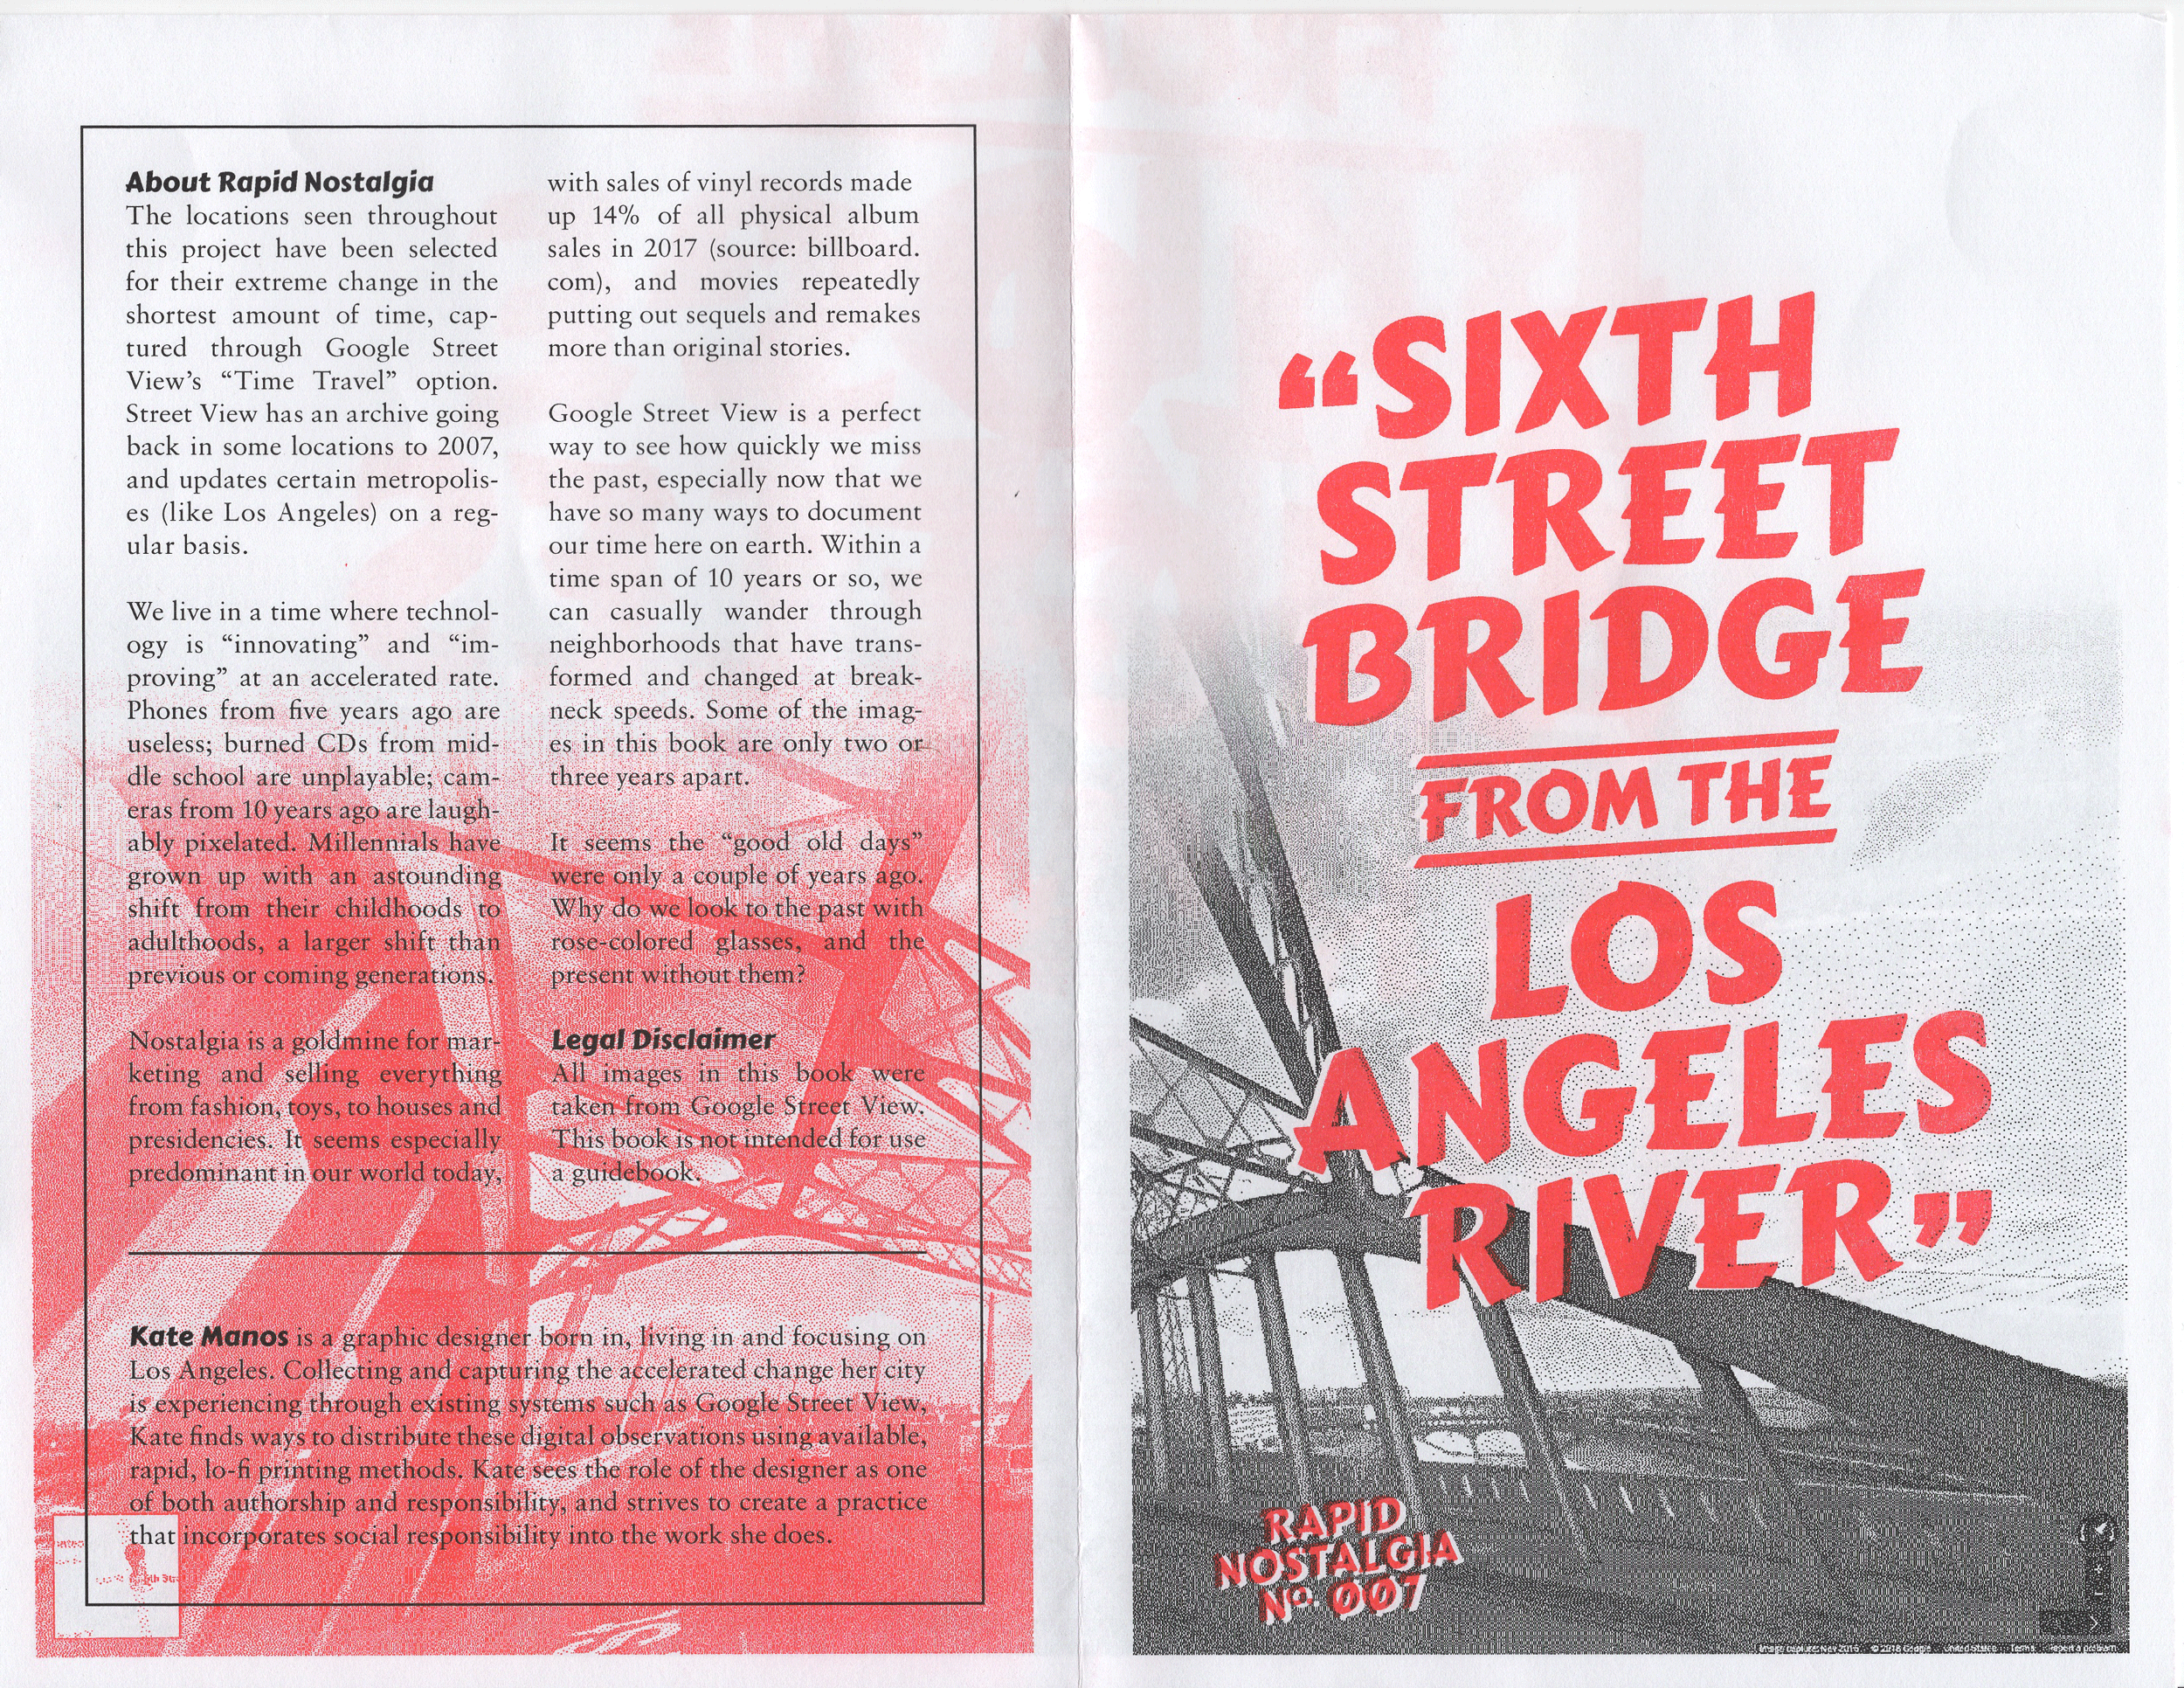 Coming Soon: Sixth Street Bridge from the Los Angeles River - Rapid Nostalgia No. 007